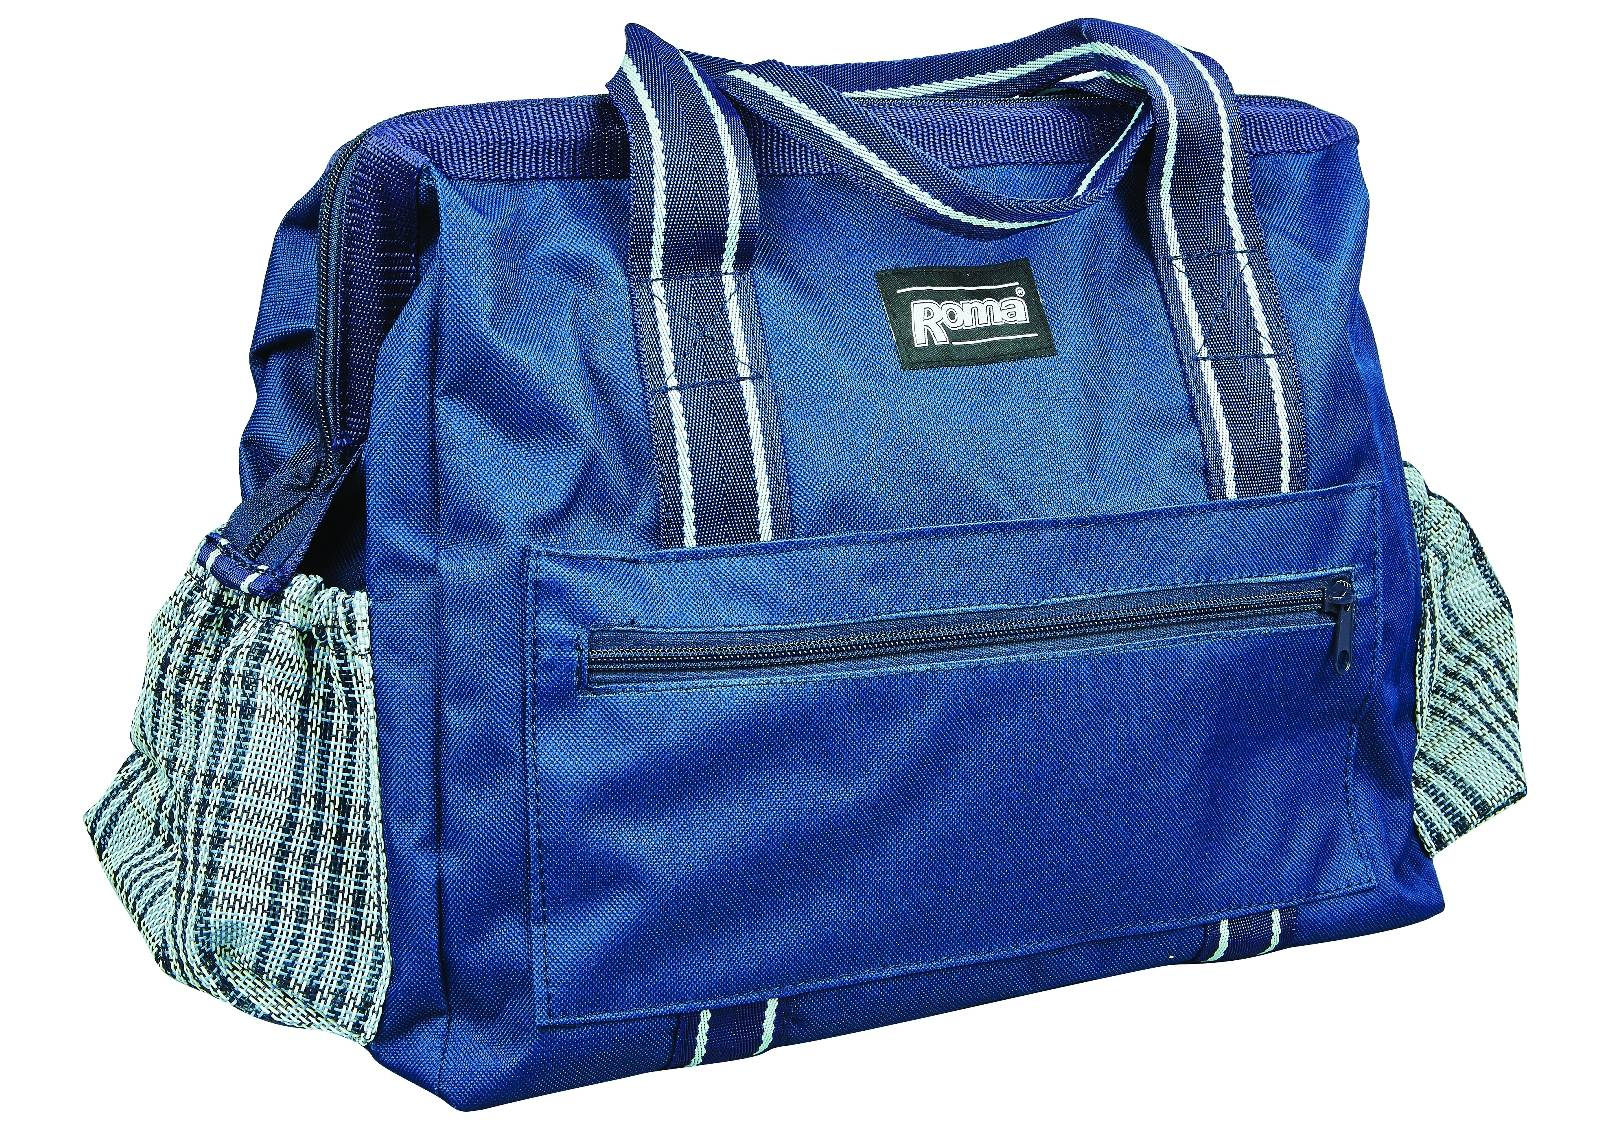 Roma Dura-Mesh Carry Bag with Zipper